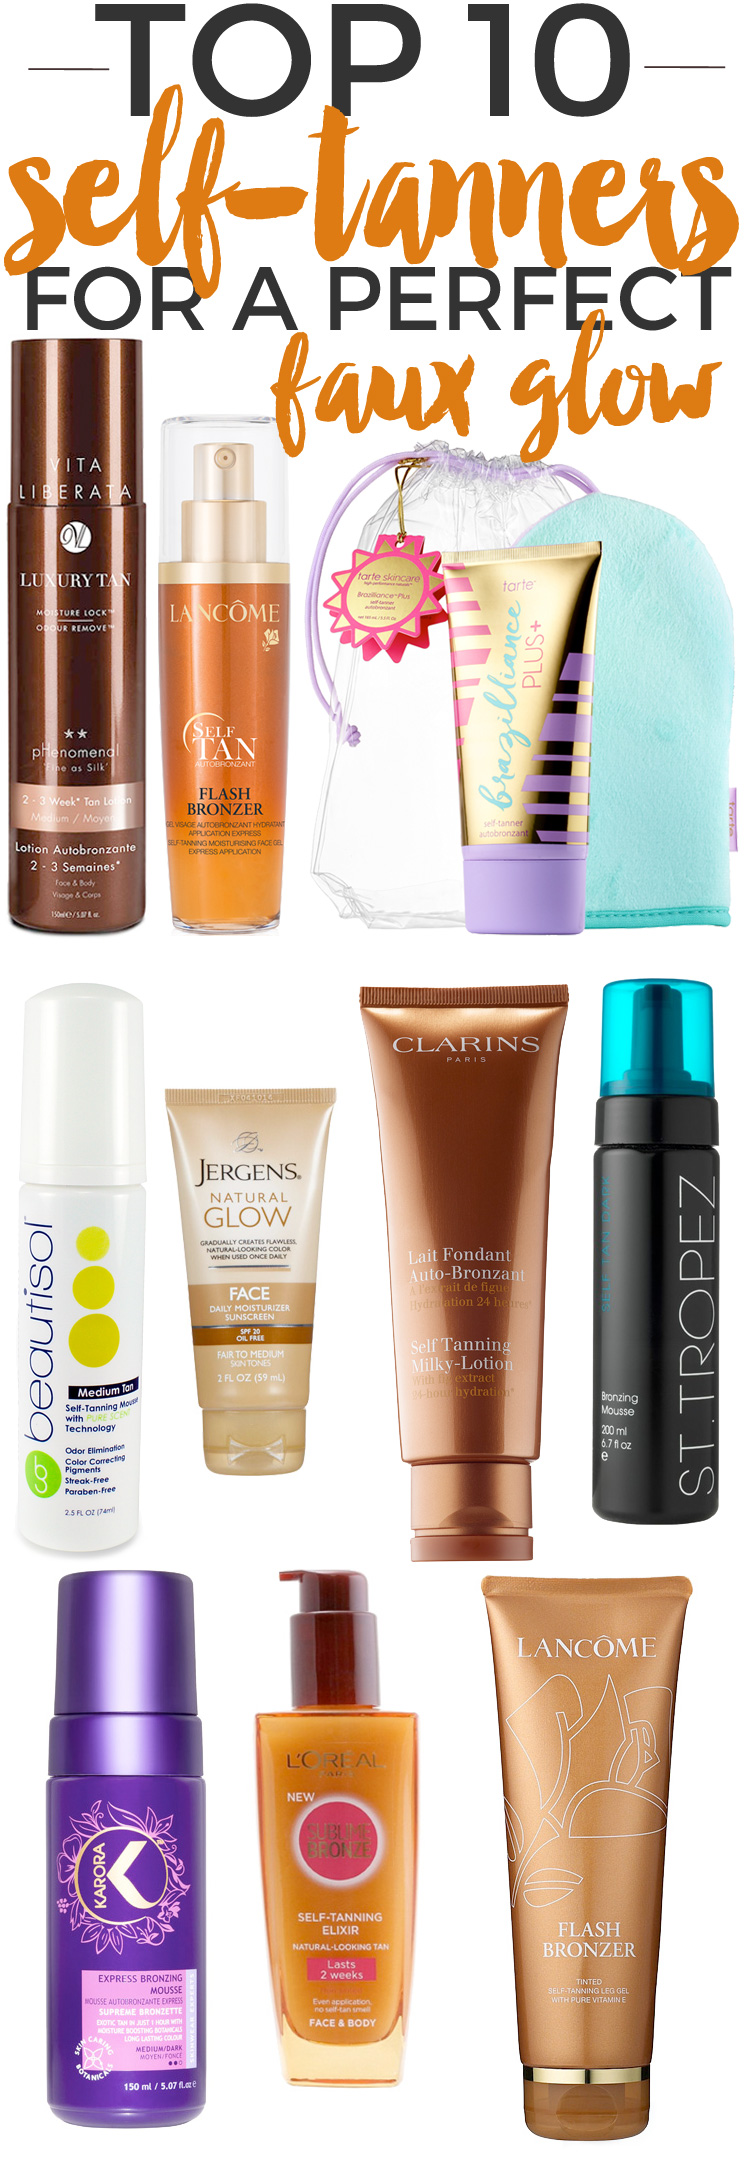 Top 10 Self-Tanners for a Perfect Faux Glow